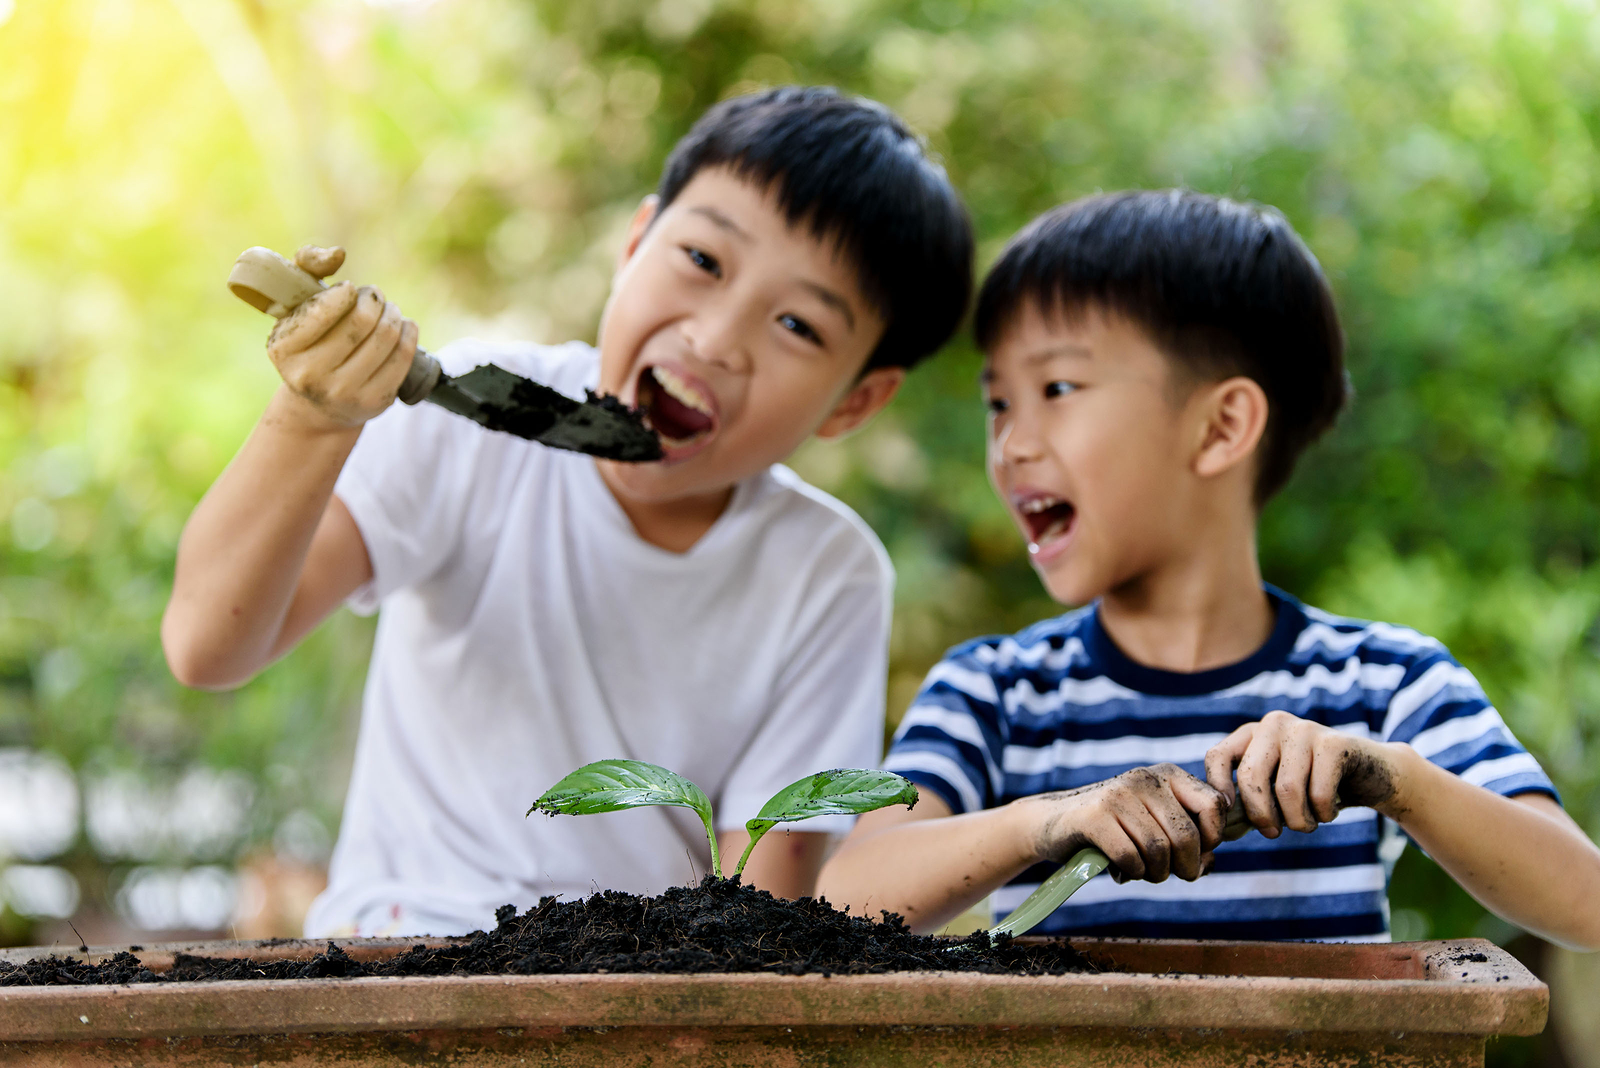 Letting your child eat dirt has surprising benefits.